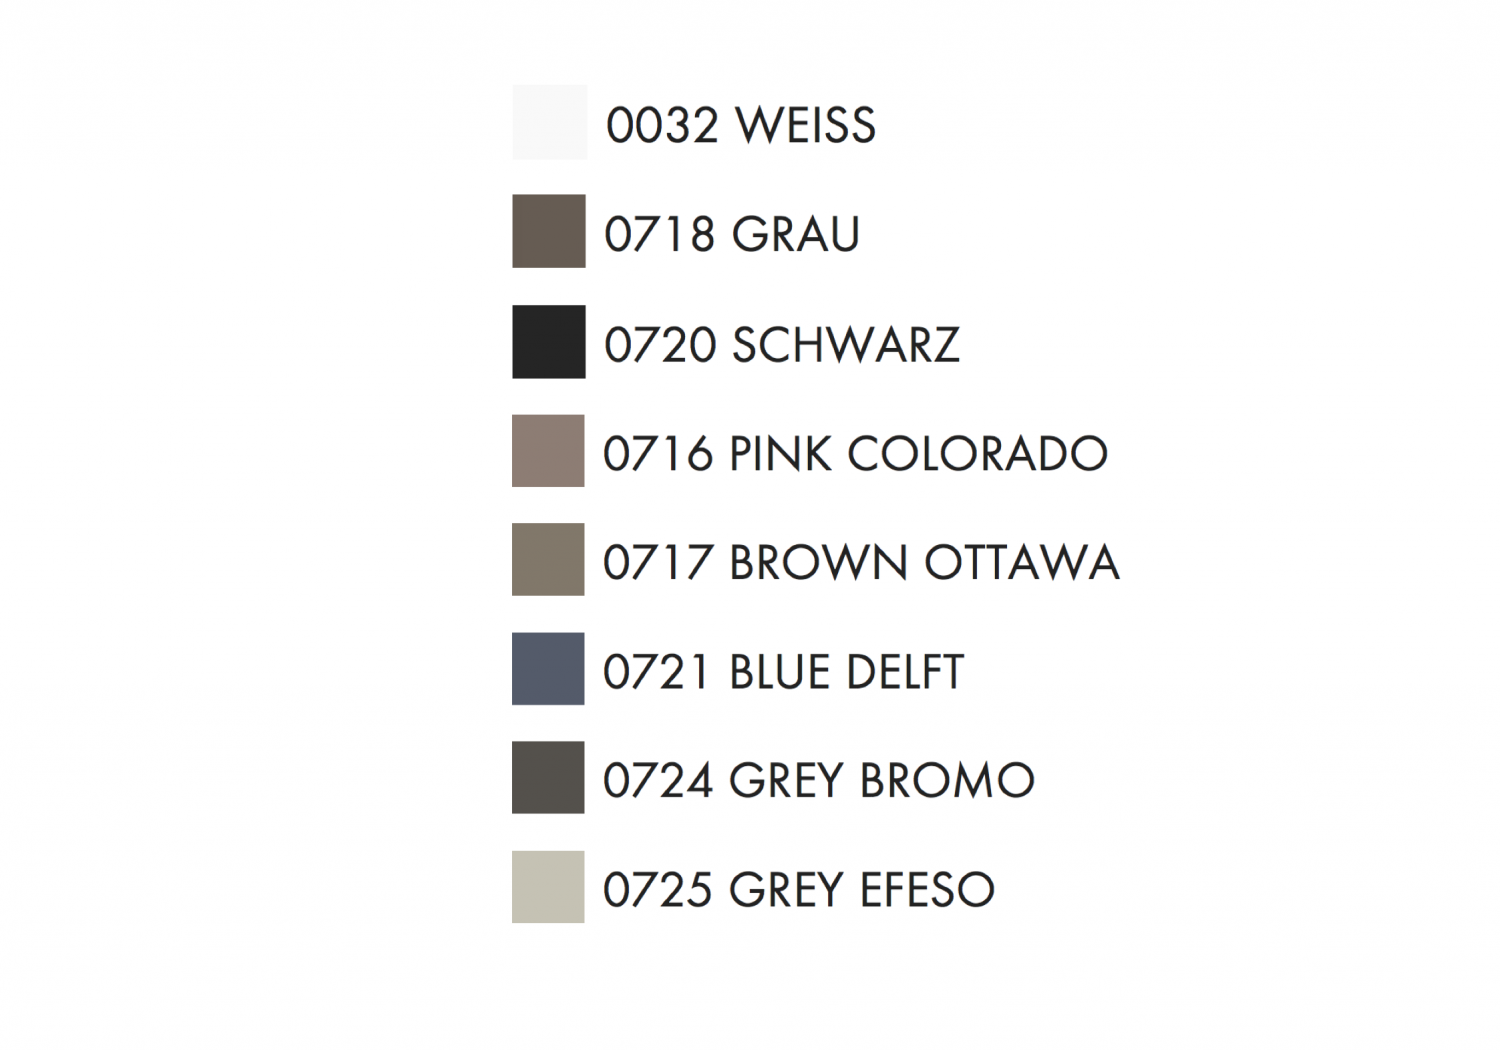 White, Black, Grey, Pink Colorado, Brown Ottawa, Blue Delphi, Grey Promo, Grey Efeso